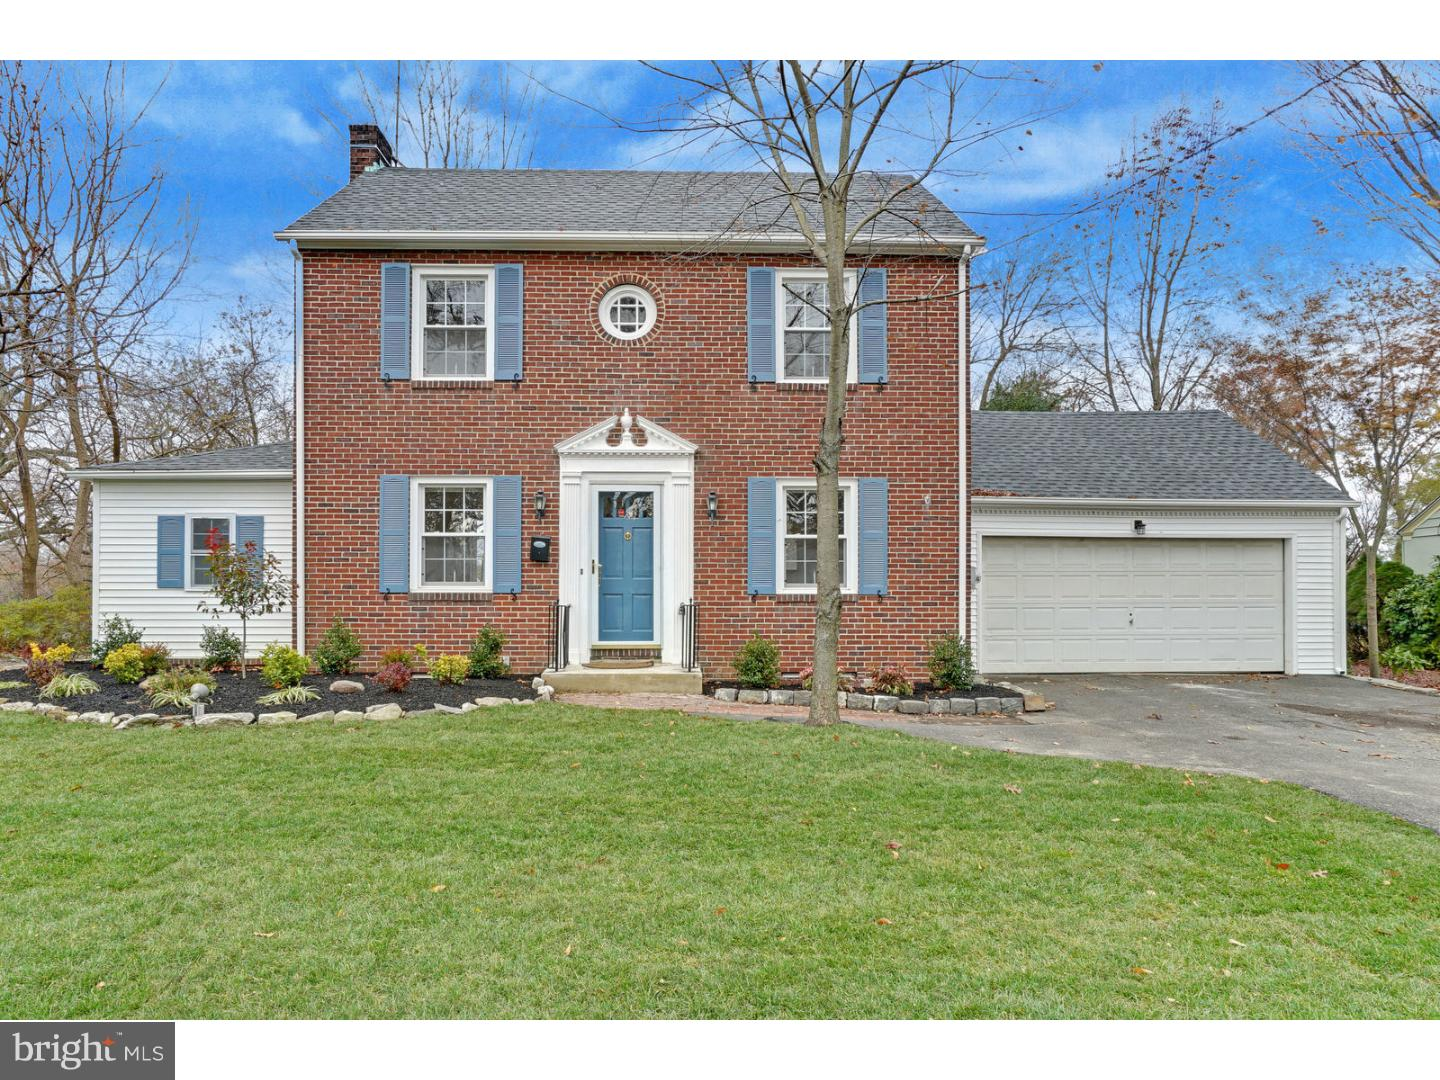 Single Family Home for Sale at 55 KENDALL BLVD Oaklyn, New Jersey 08107 United States